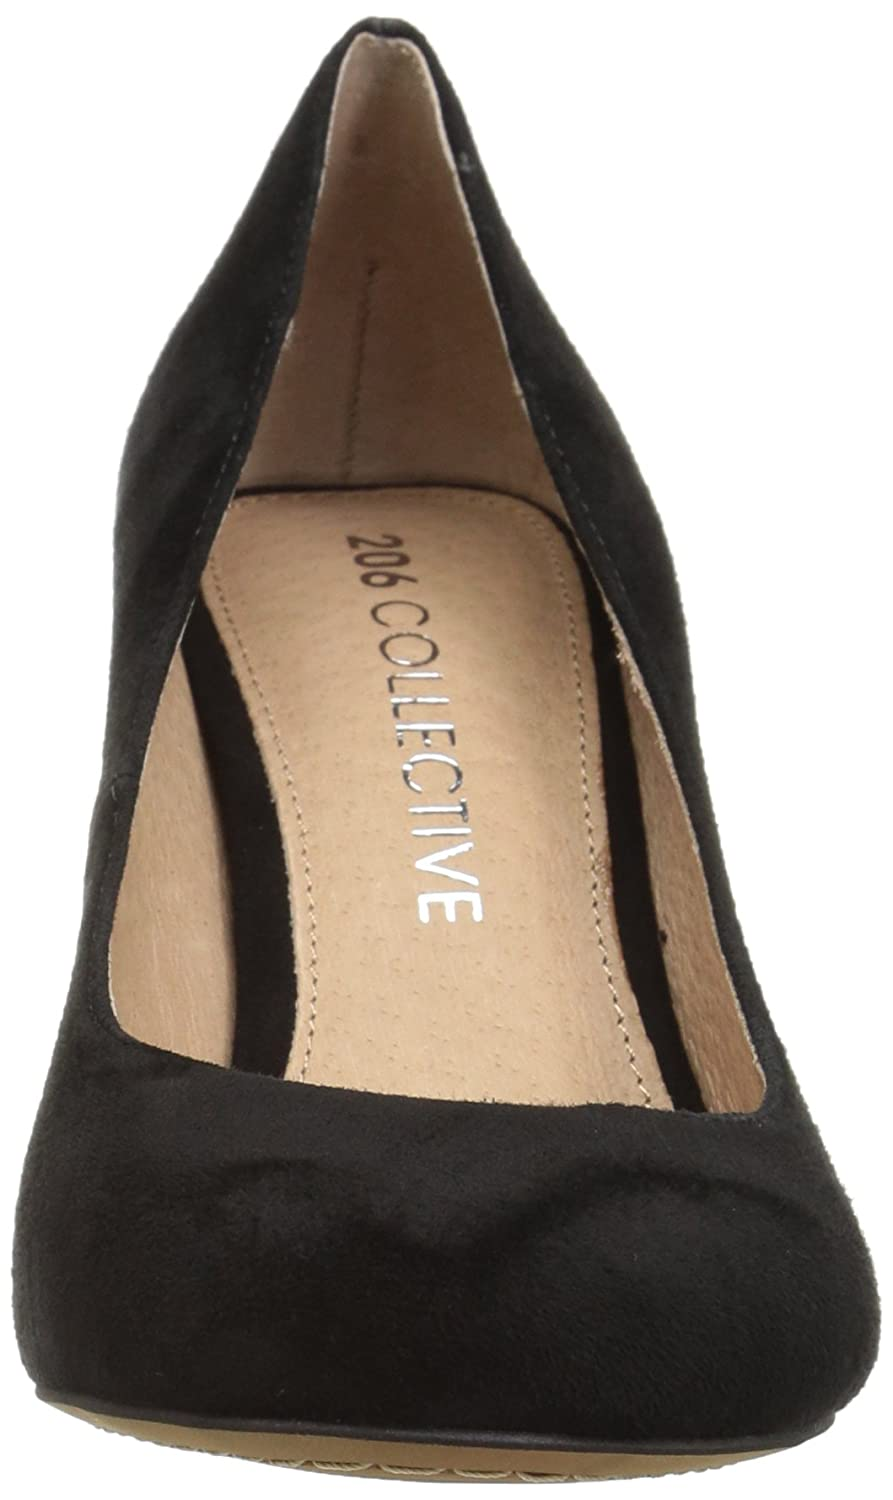 206 Collective Women's Coyle Round Toe Block Heel High Pump B07894243V 7.5 B(M) US|Black Suede